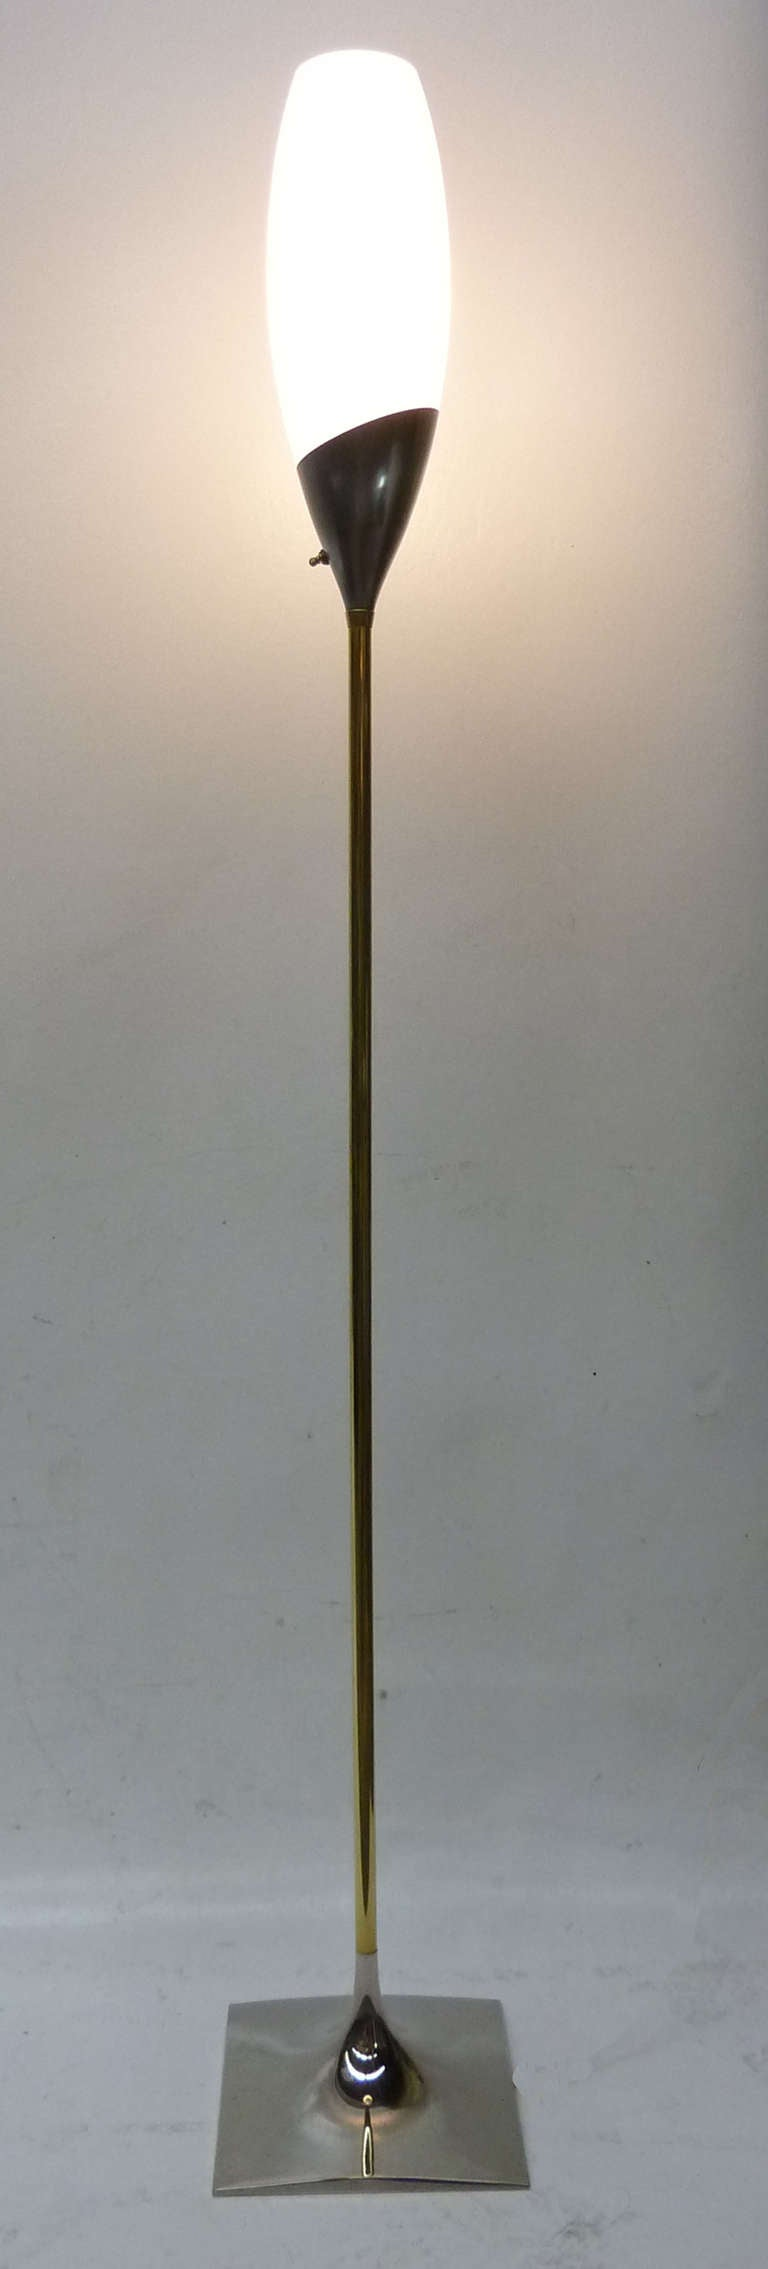 Mid century modern floor lamp by gerald thurston for laurel at 1stdibs mid century modern floor lamp by gerald thurston for laurel 2 geotapseo Image collections